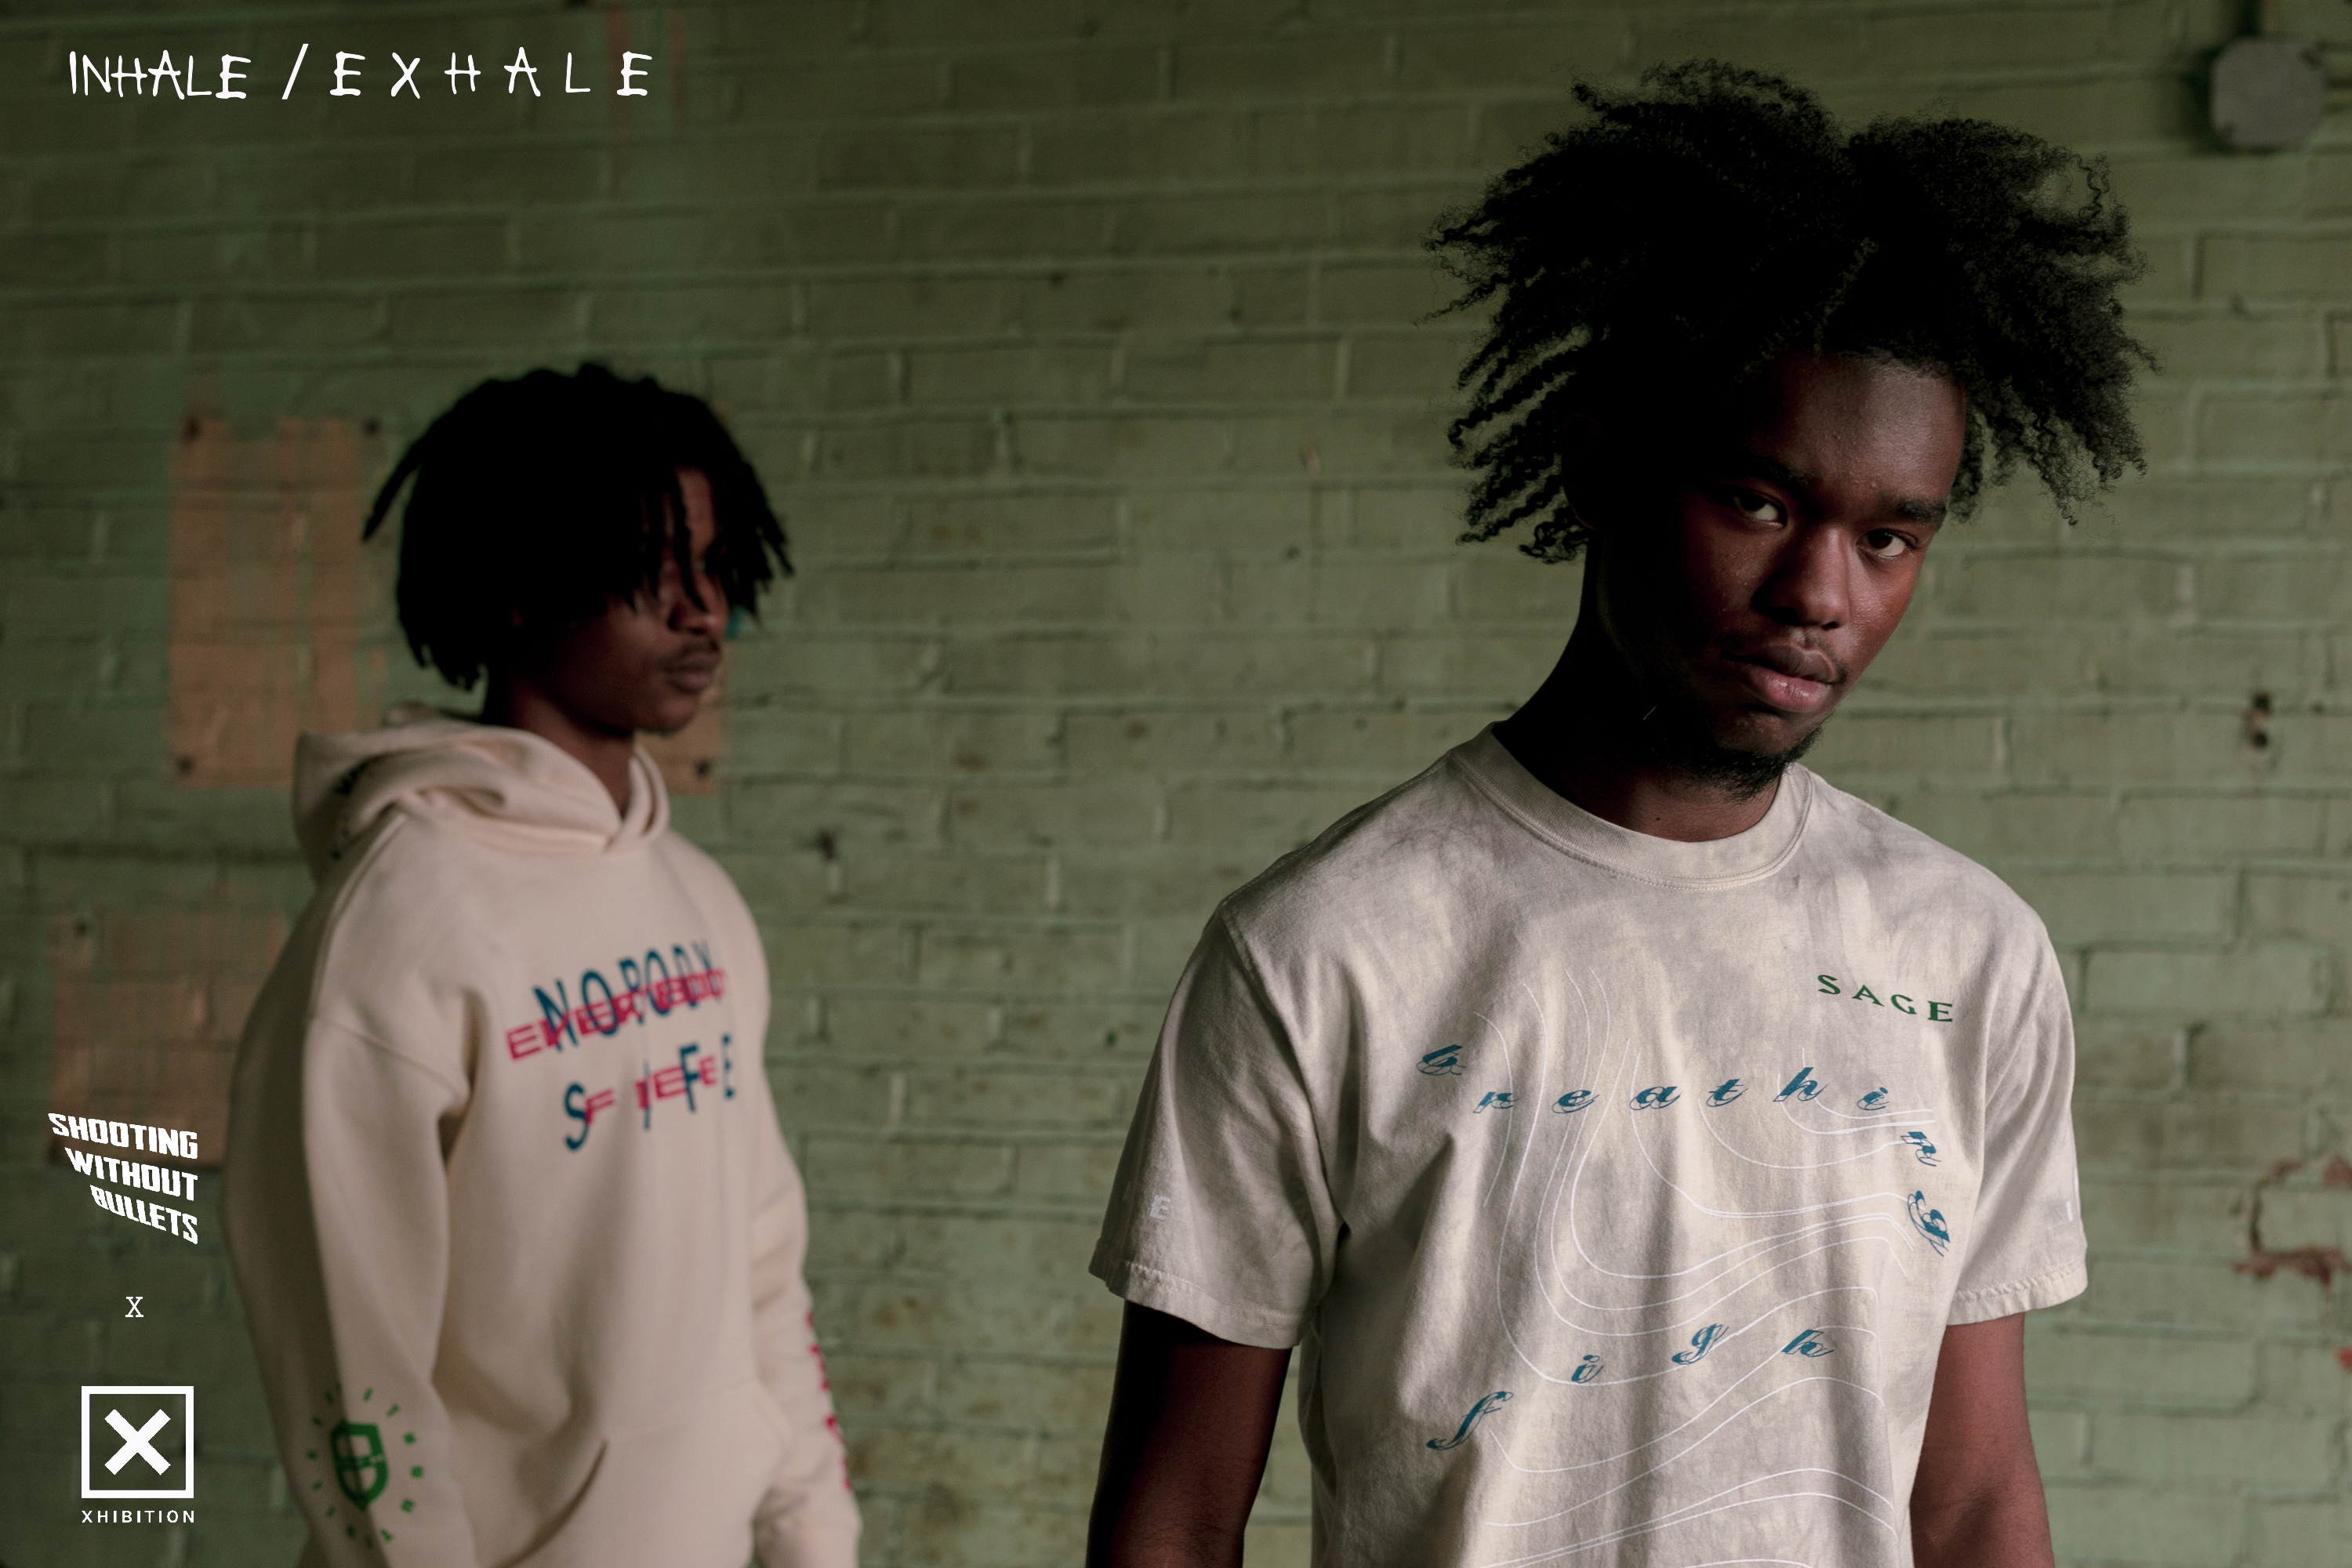 Campaign image from SWOB x Xhibition capsule collection of people wearing a hoodie and t-shirt